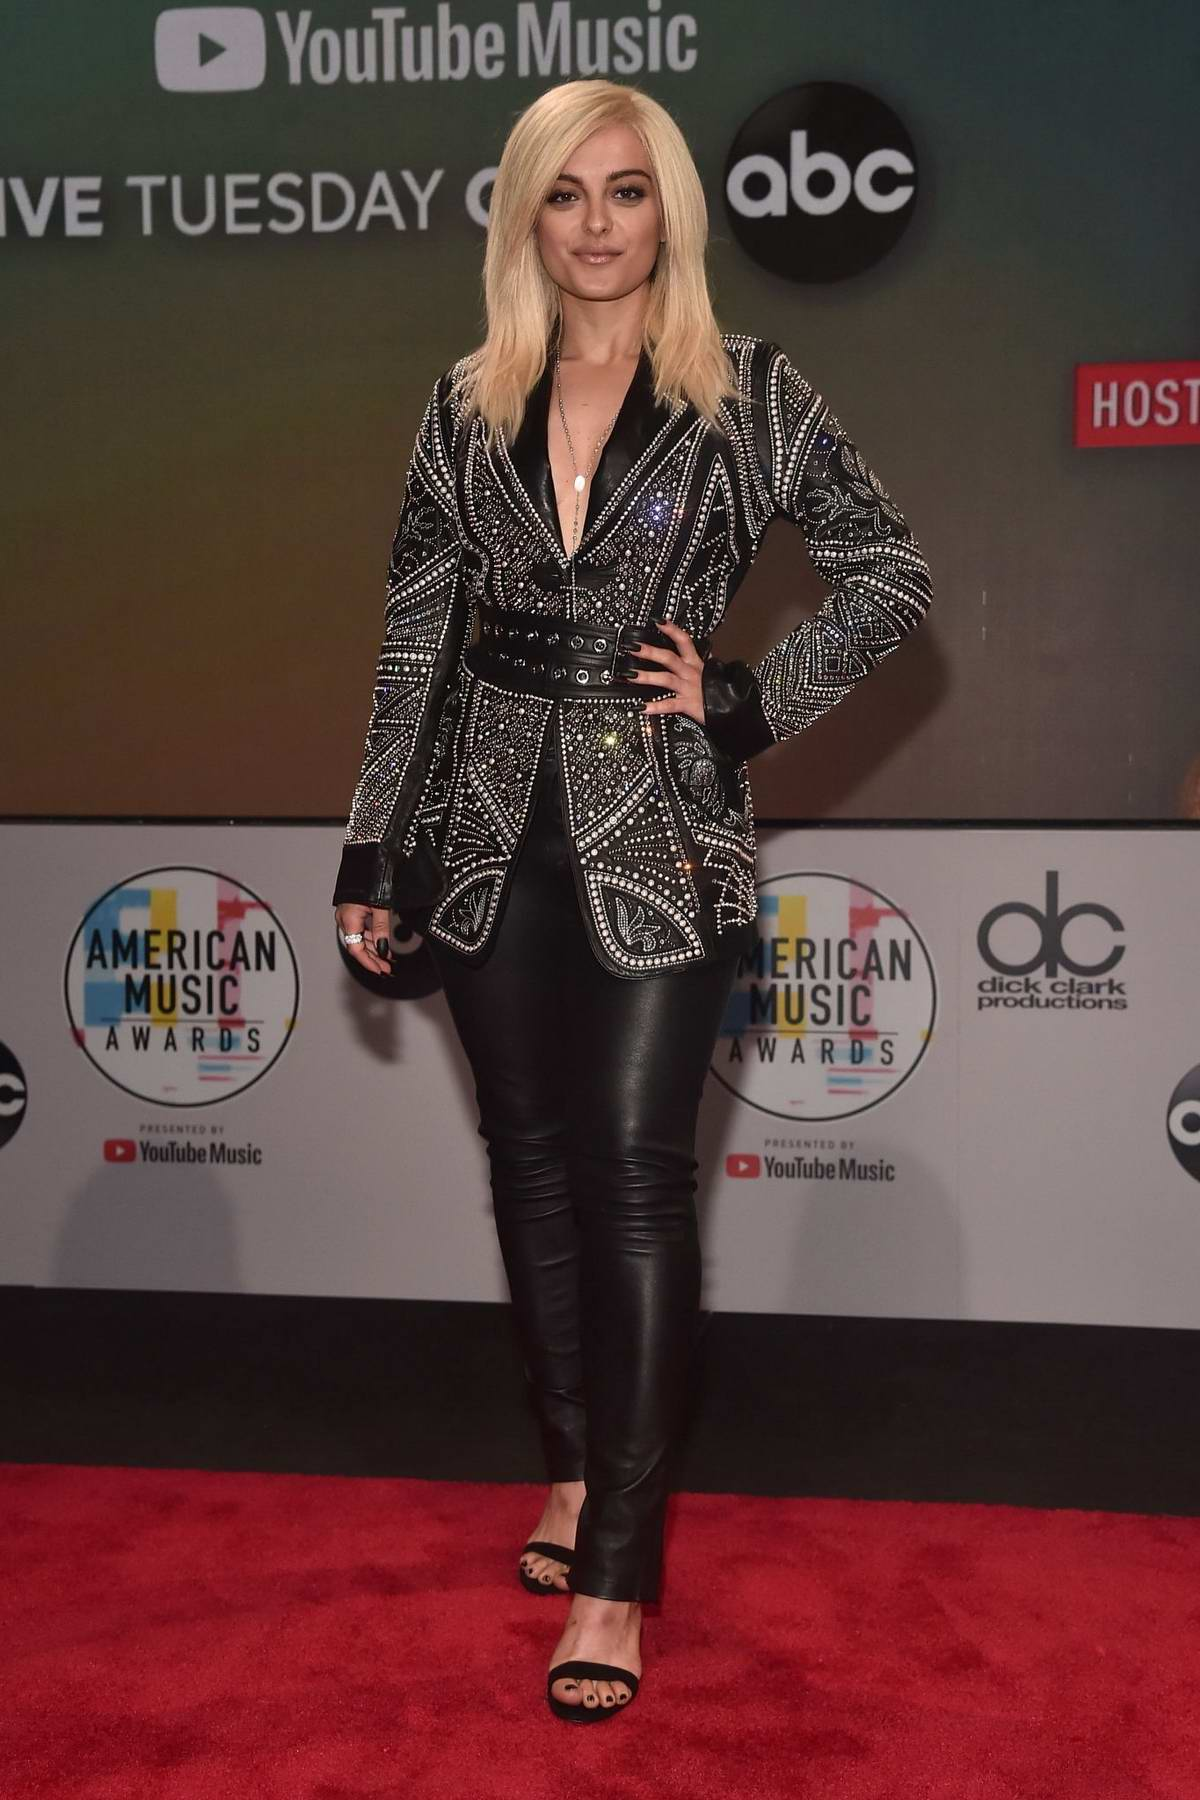 Bebe Rexha attends 2018 American Music Award Nominations Announcement in Los Angeles